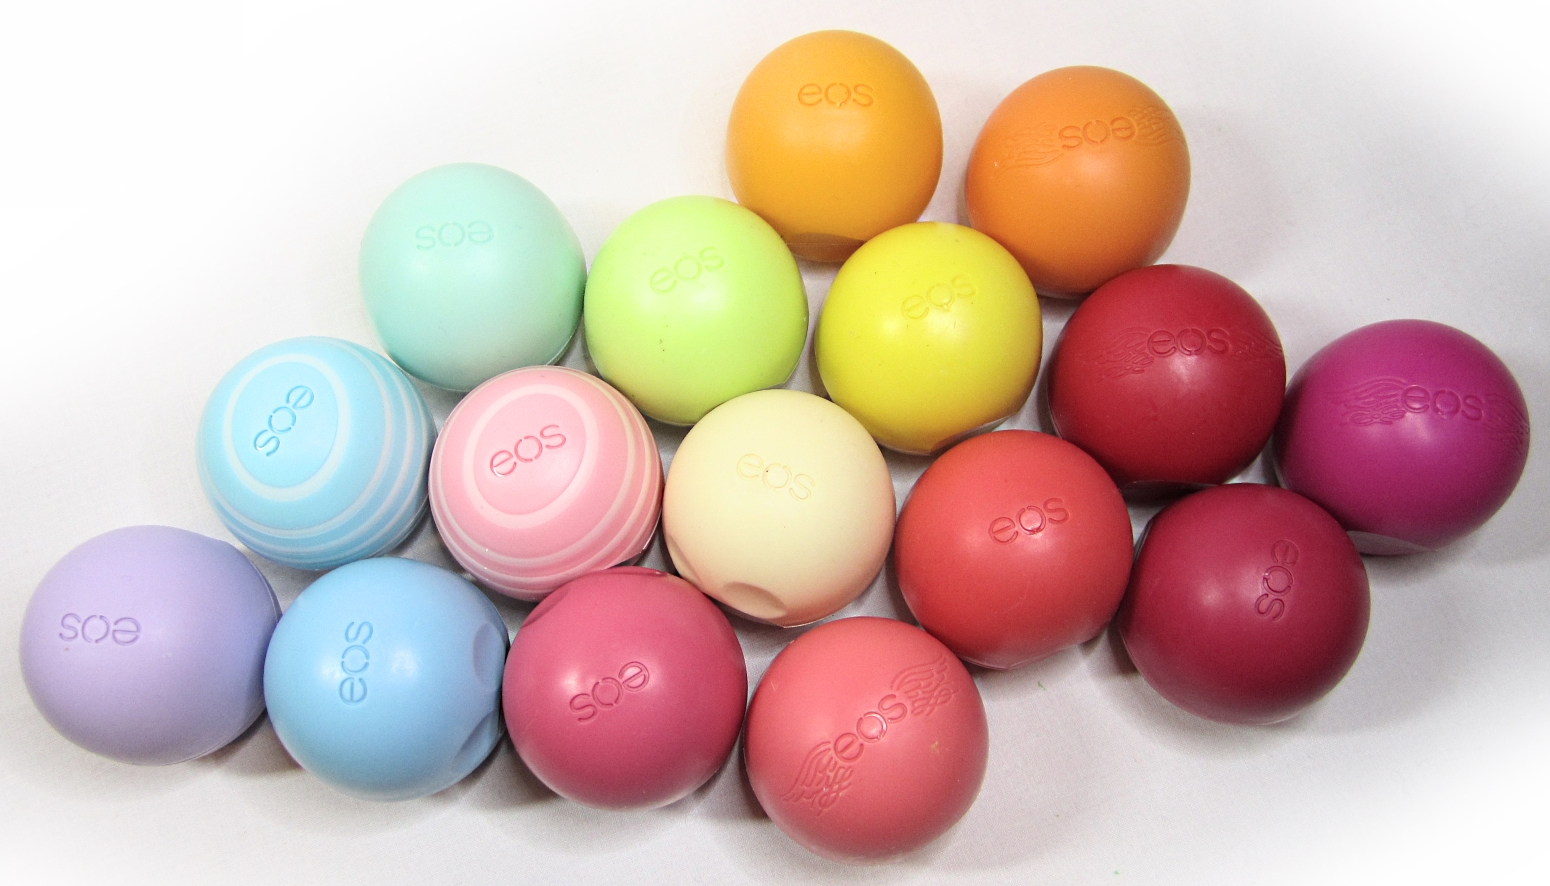 eos Smooth Sphere Lip Balm collection | stash matters